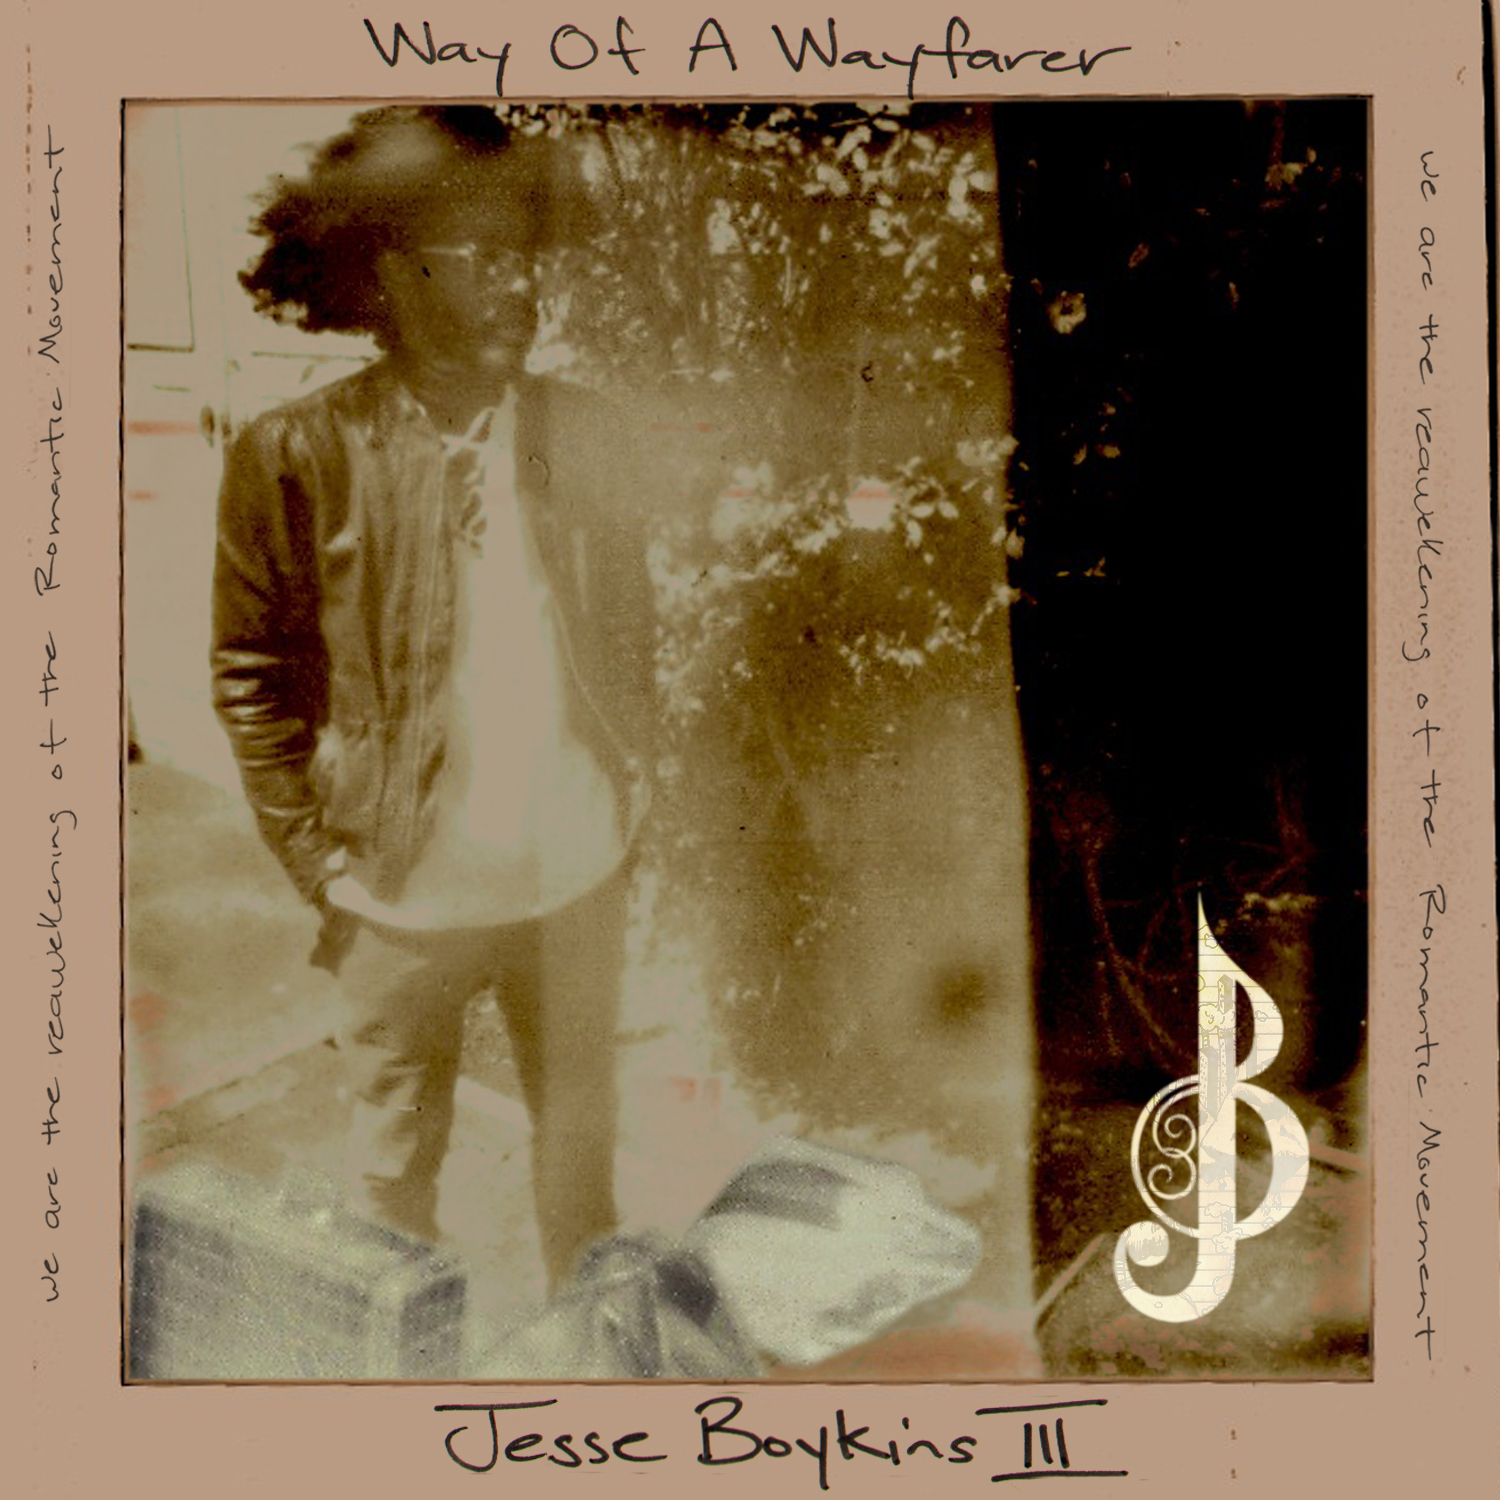 jesse boykins way of a wayfarer